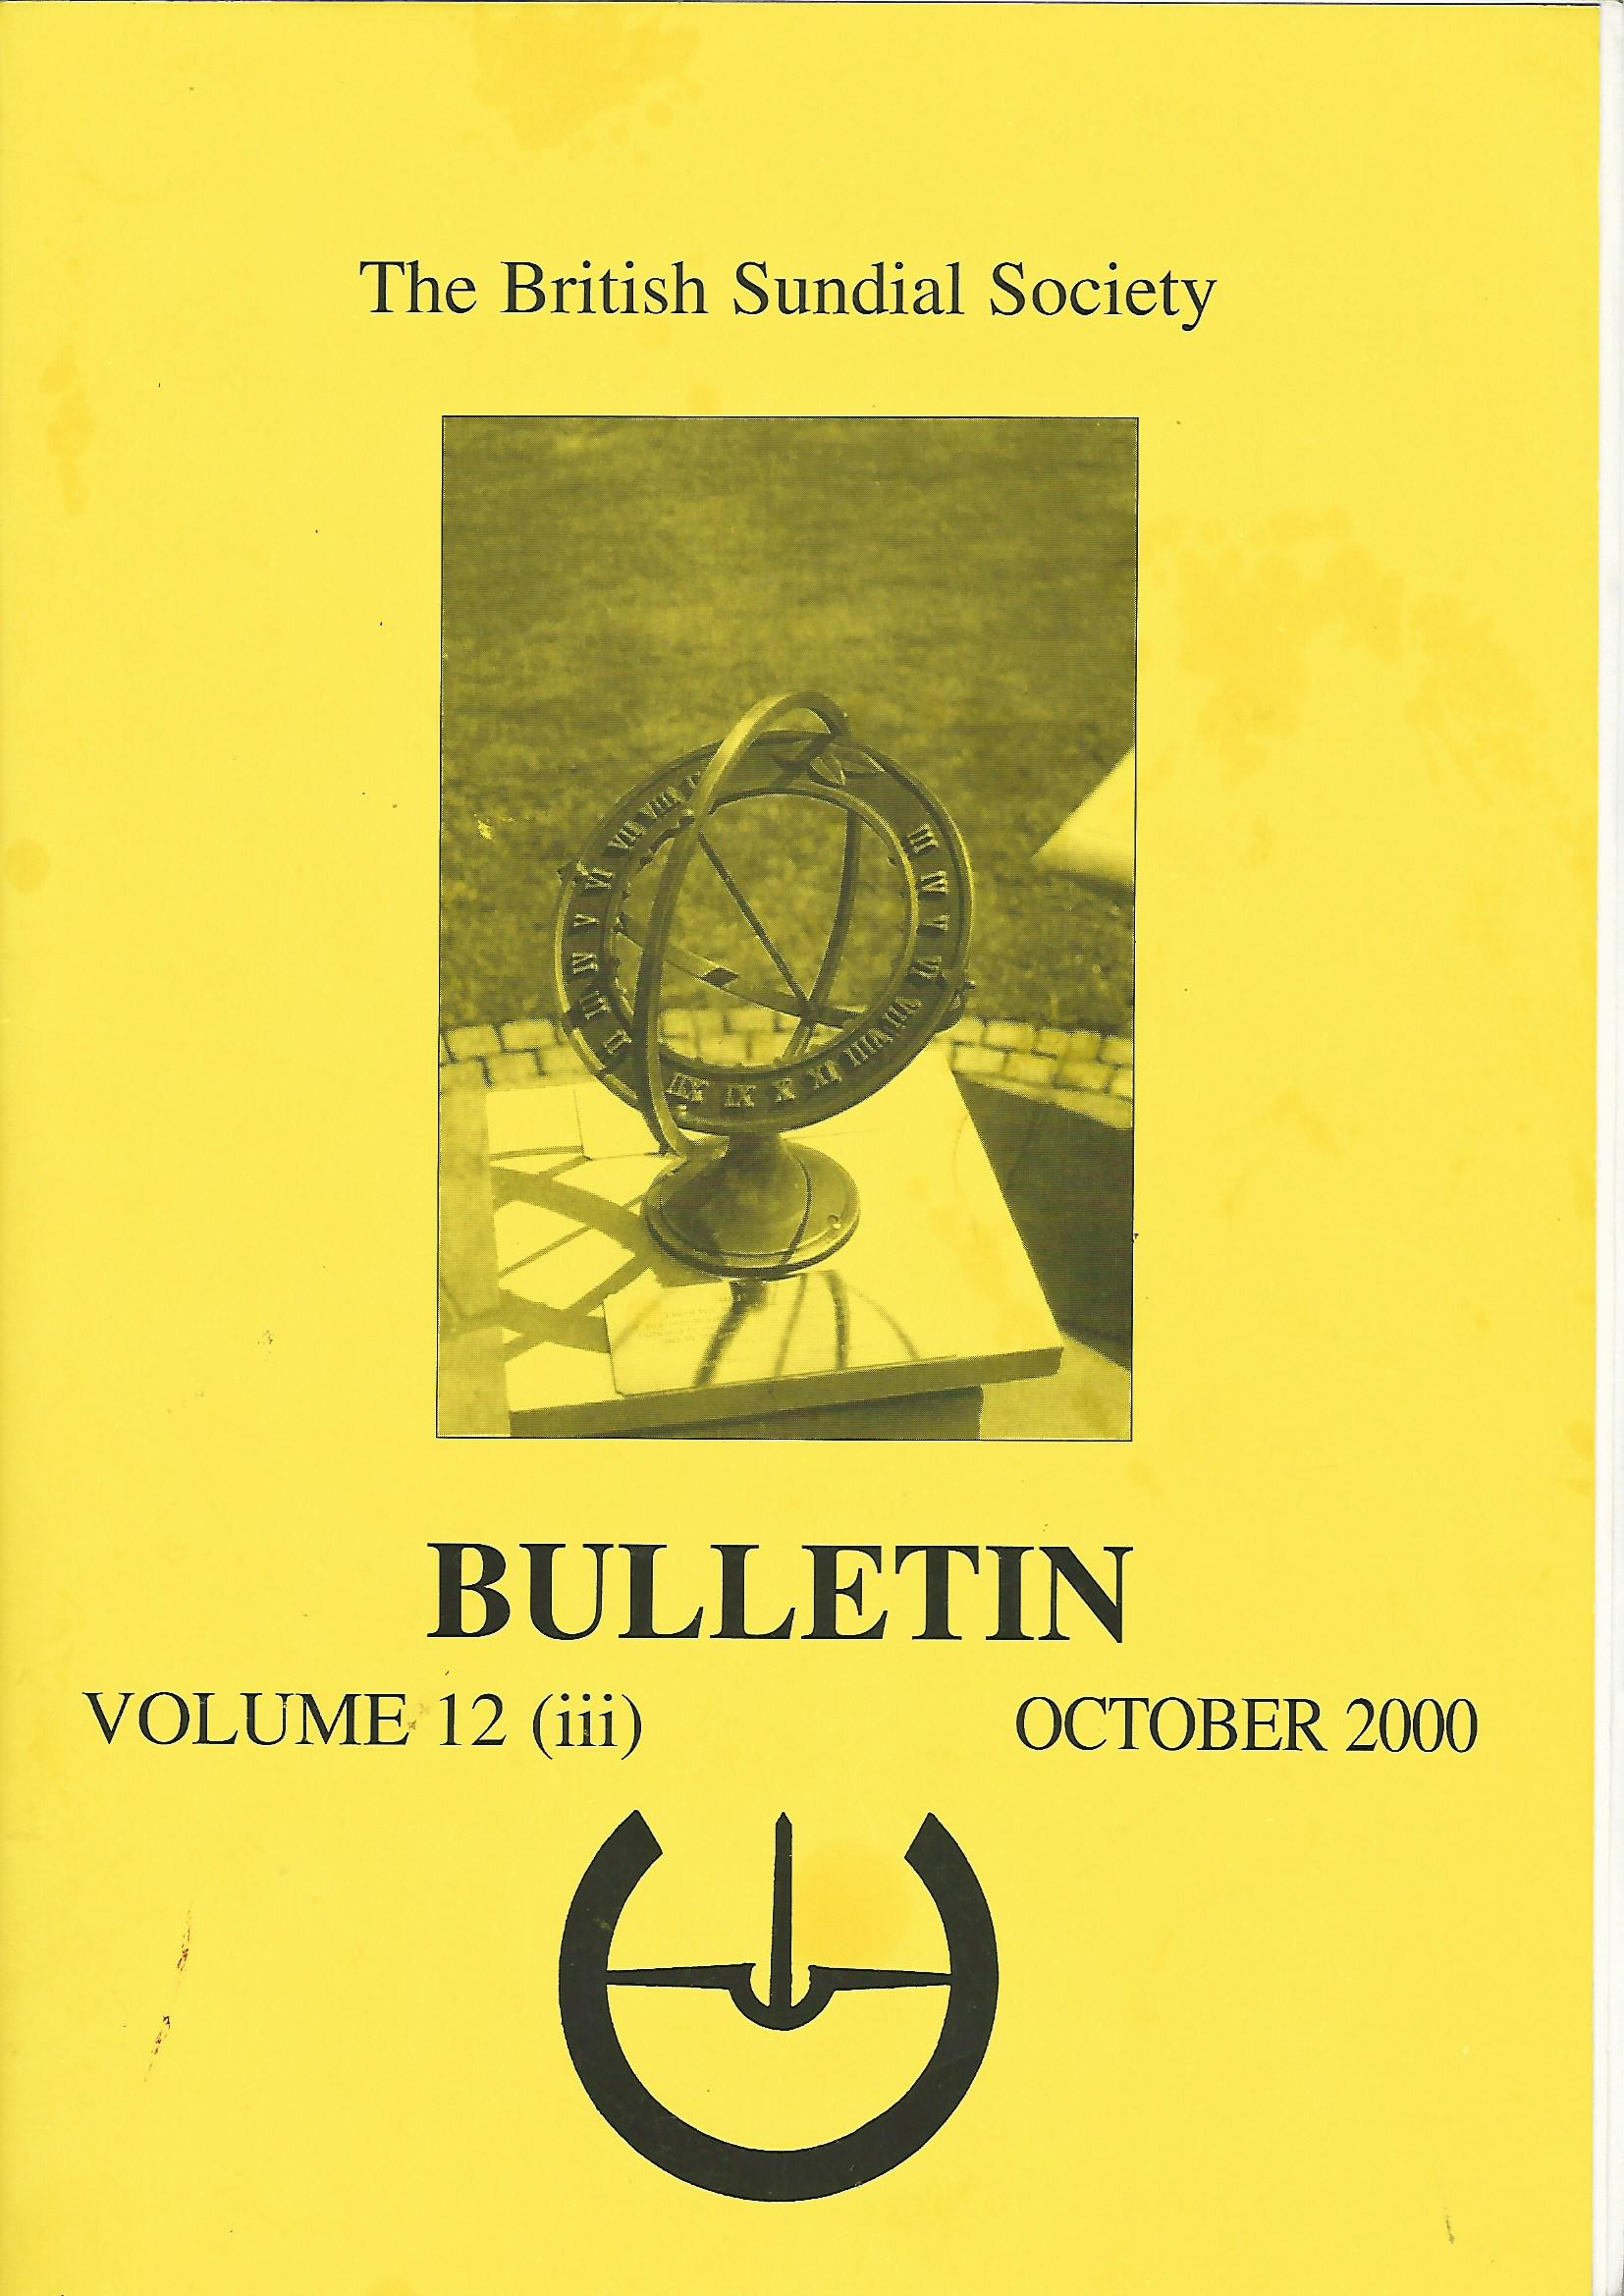 Image for The British Sundial Society Bulletin Volume 12 (iii)